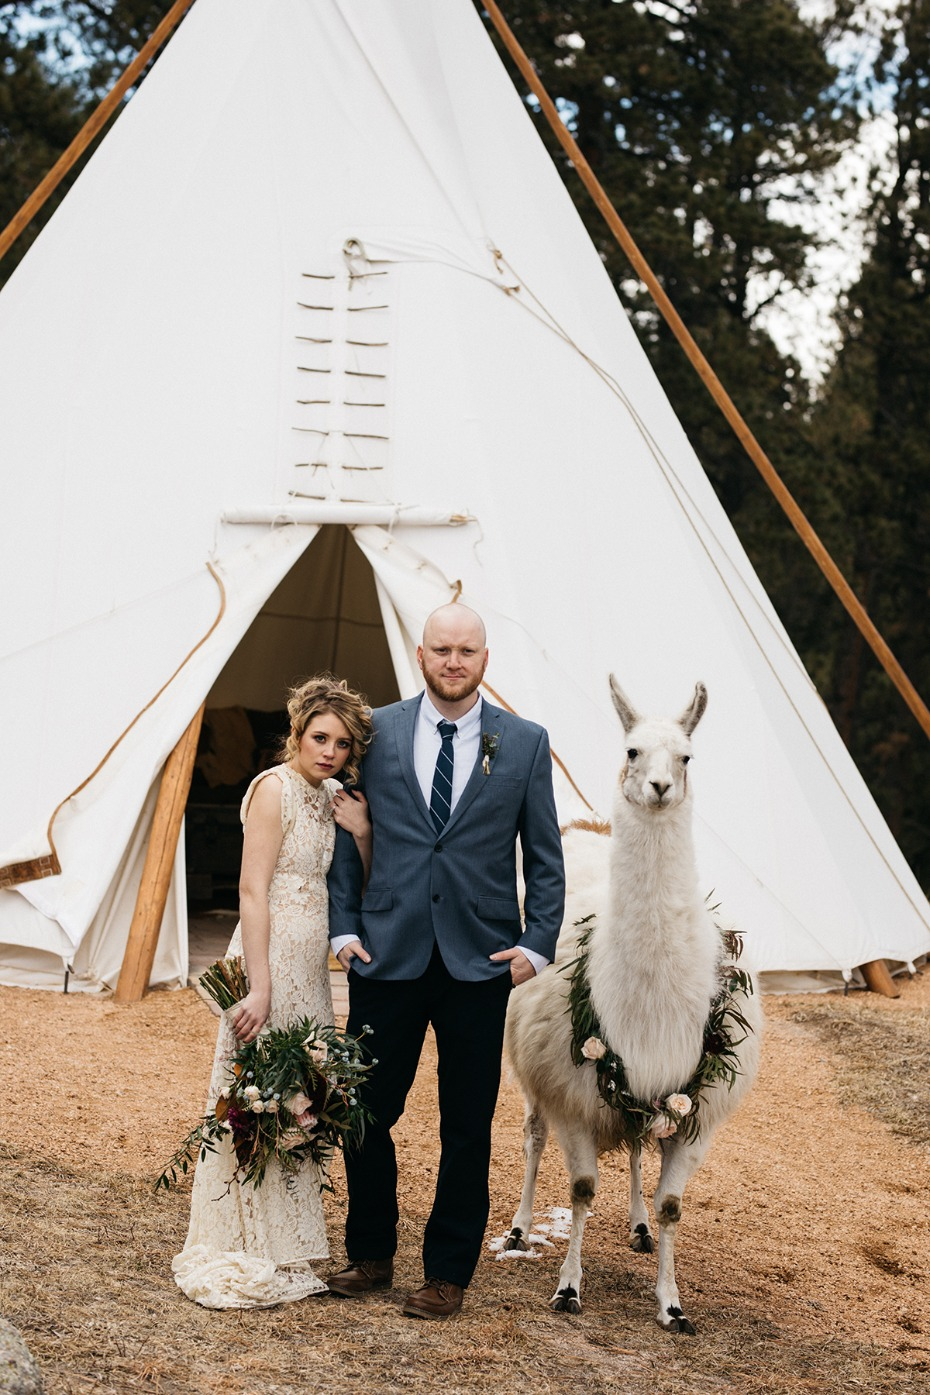 wedding teepee and wedding llama